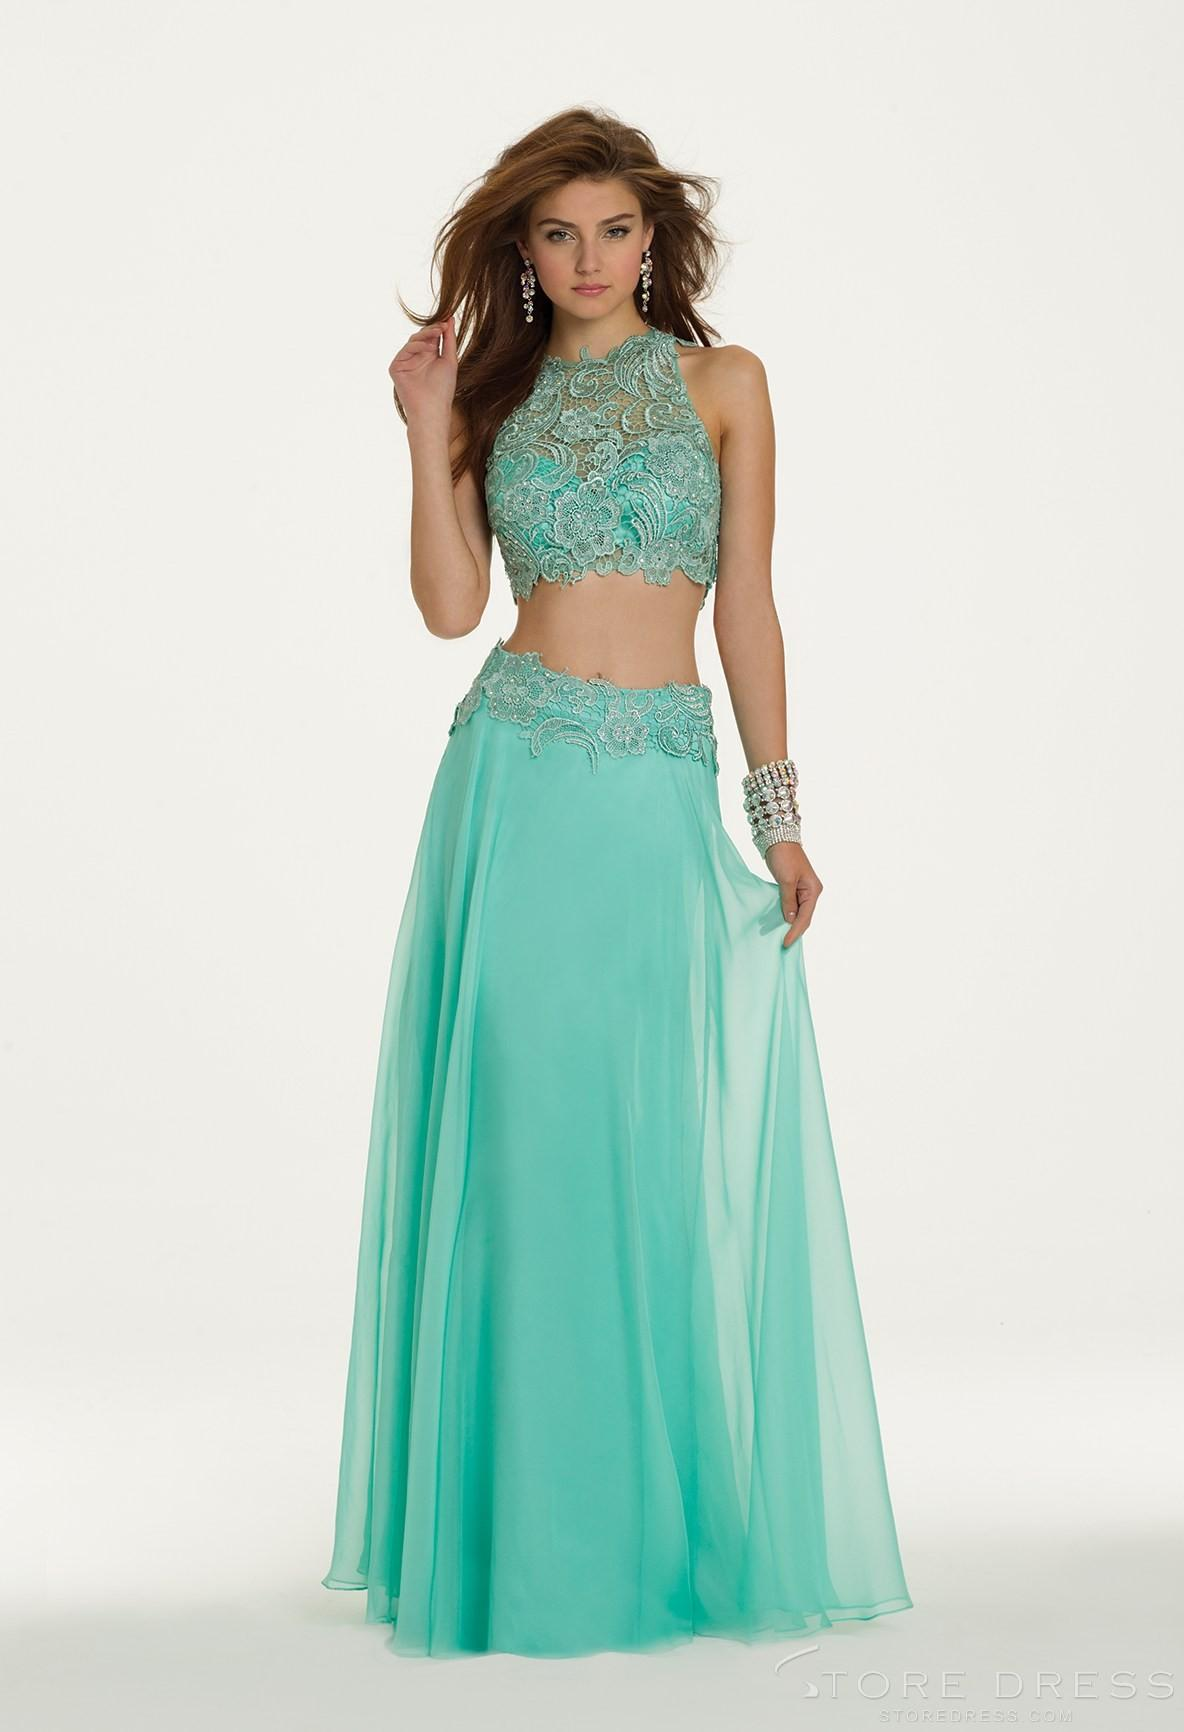 High Neck Two Piece Prom Dress With Lace Applique Sequins Beads ...